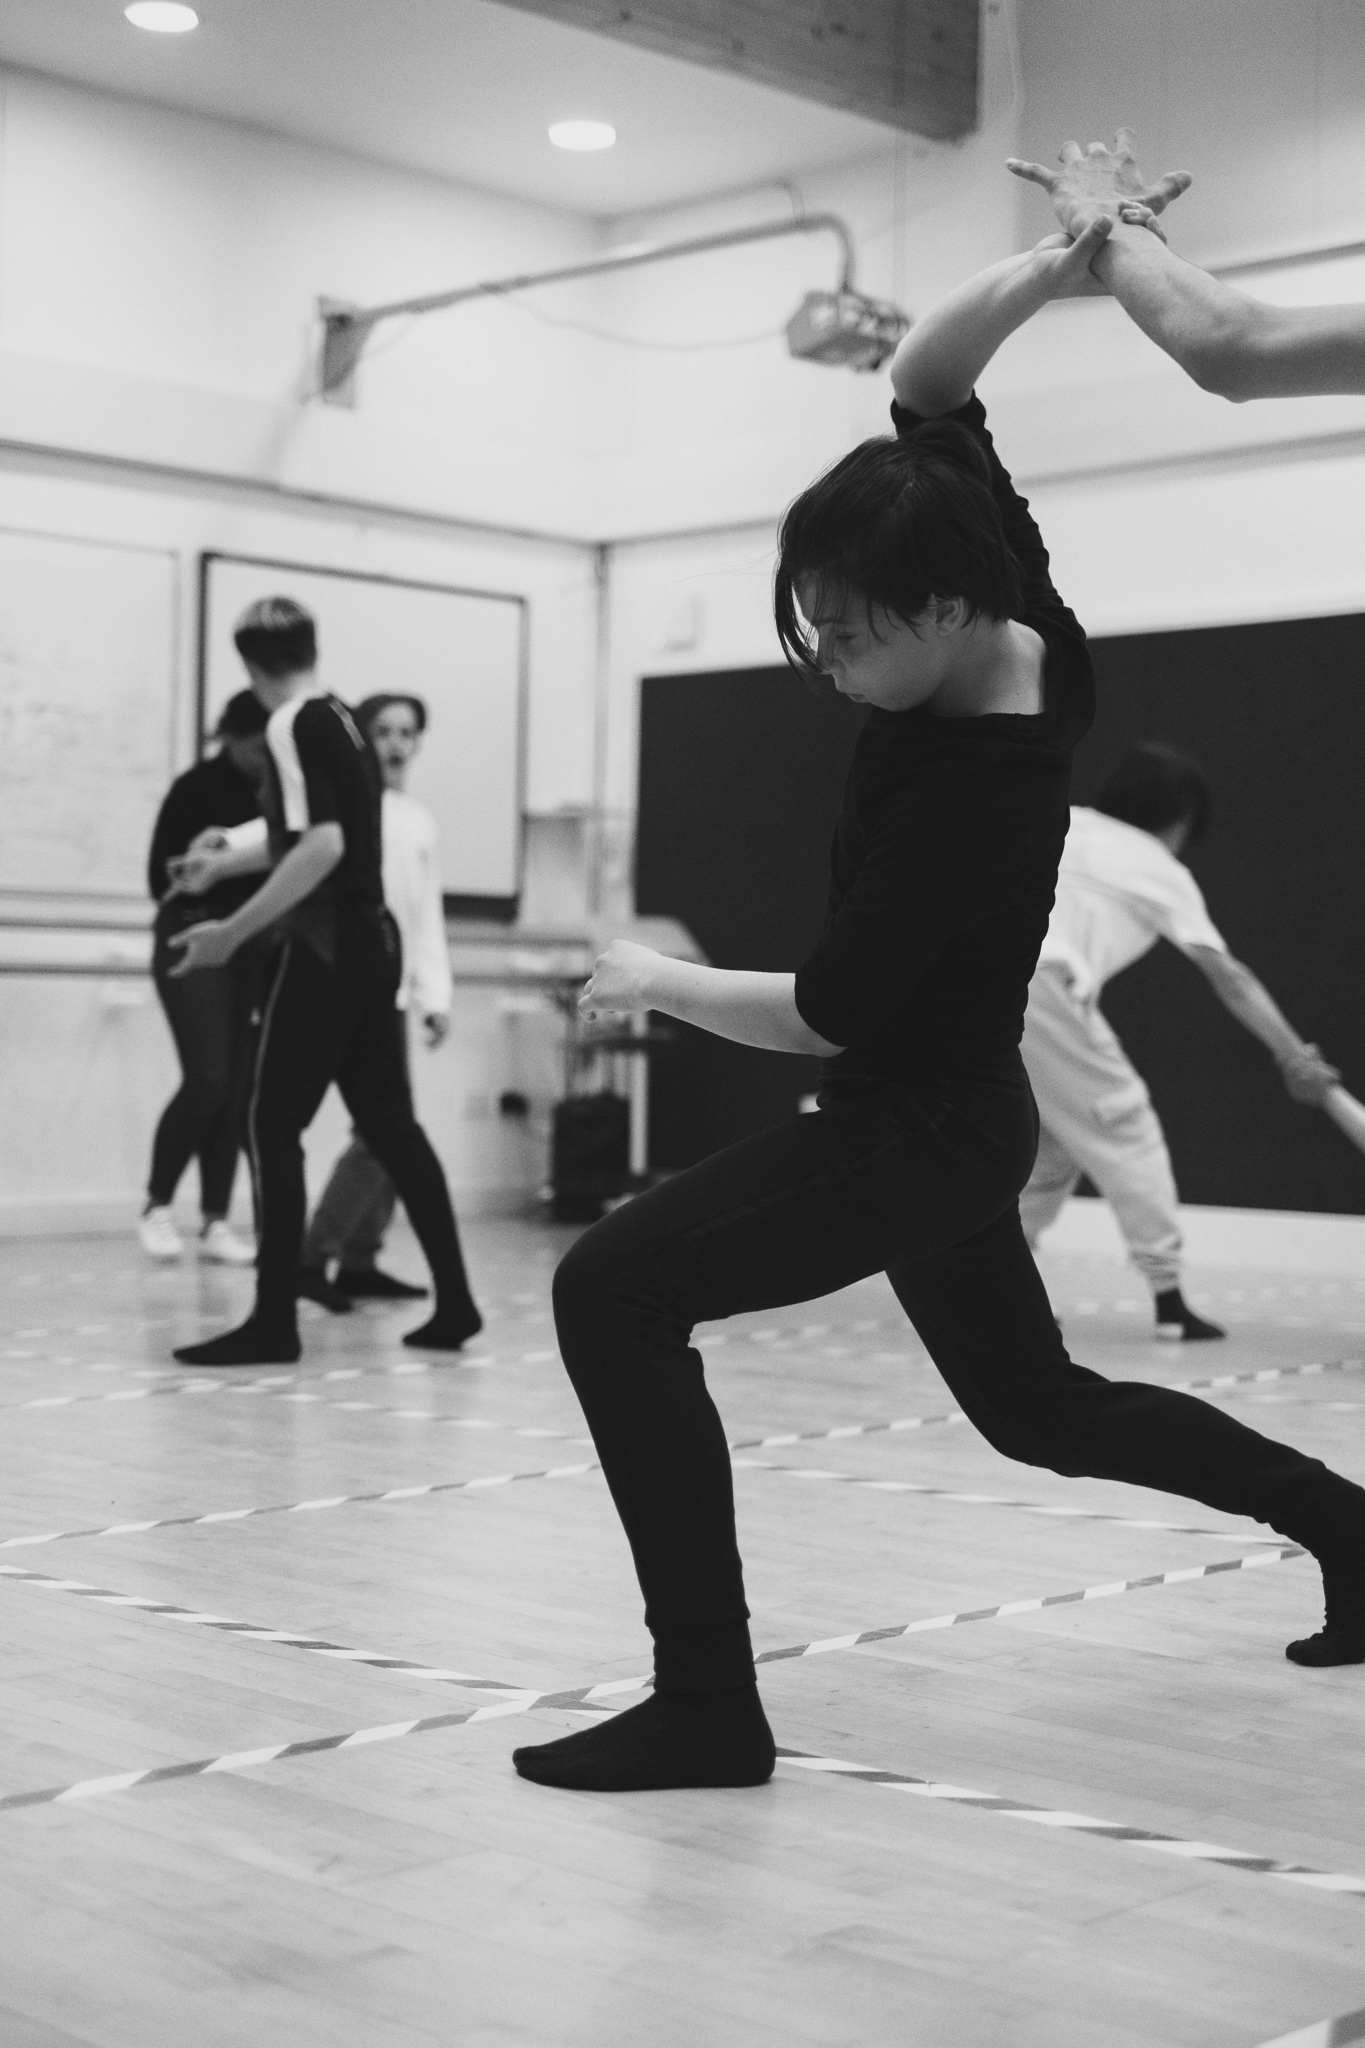 A teenage boy dances during a dance rehearsal, his hand is connected to another